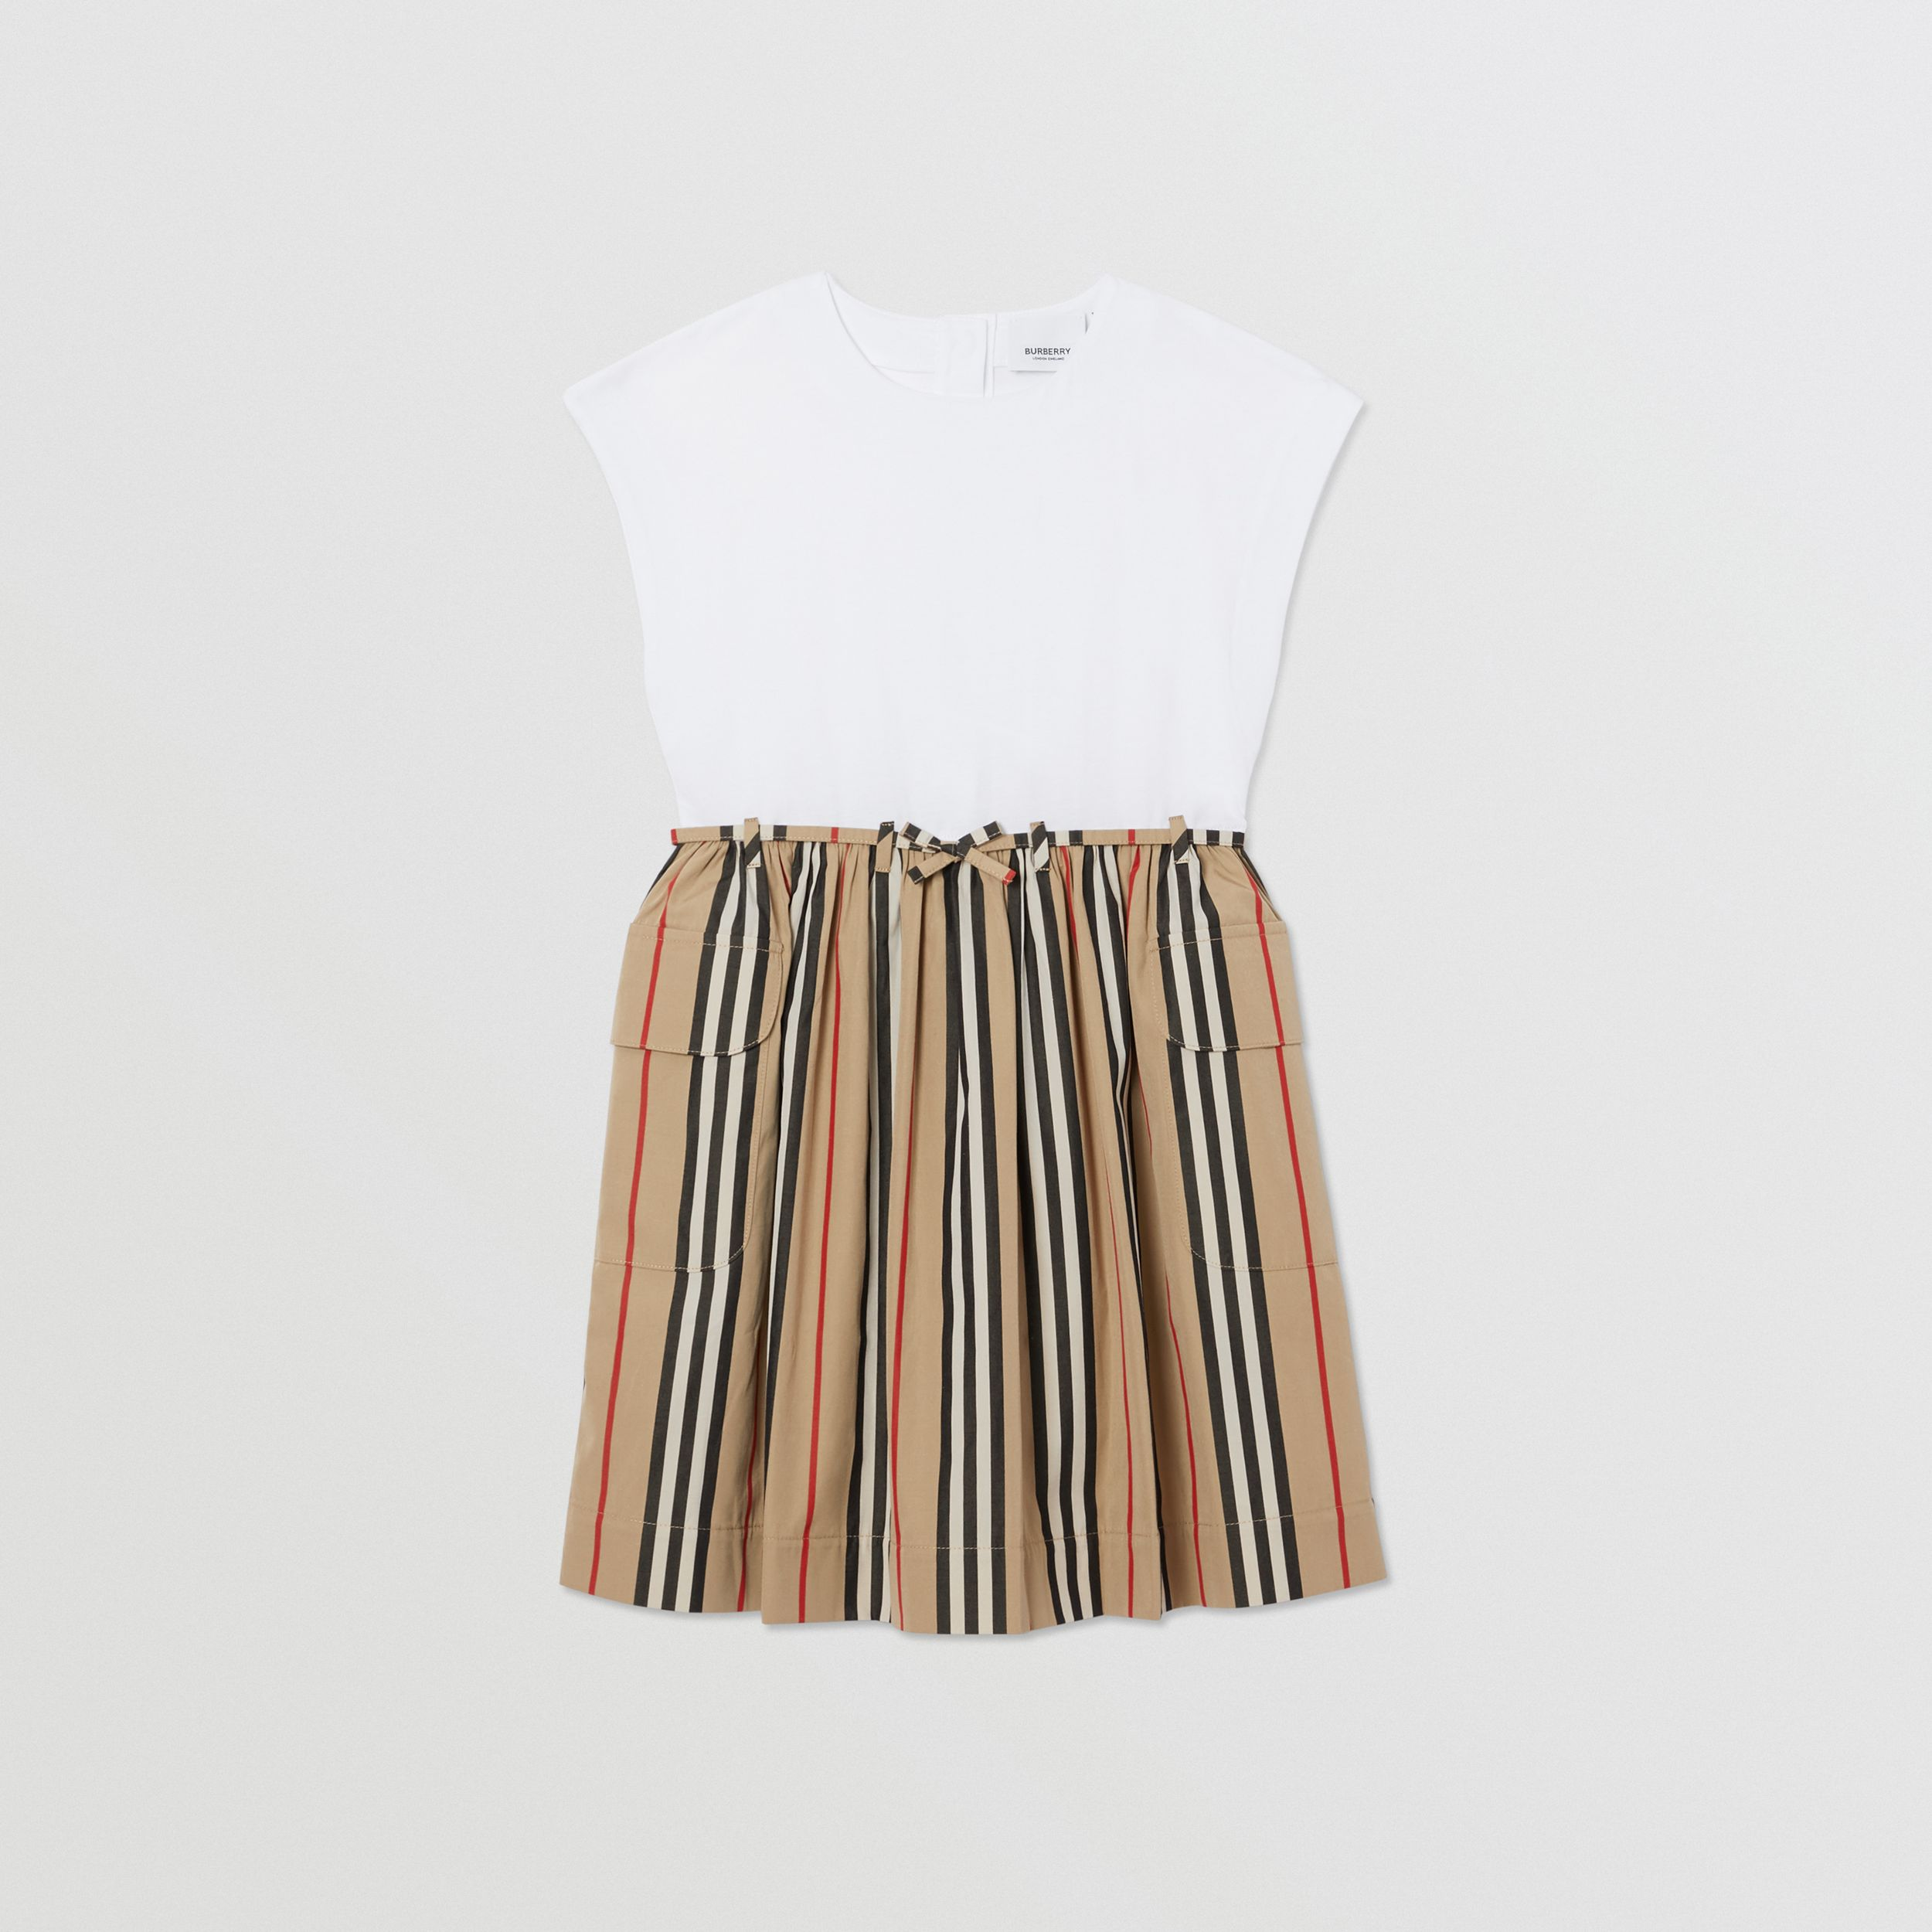 Icon Stripe Cotton Dress in Archive Beige | Burberry - 1